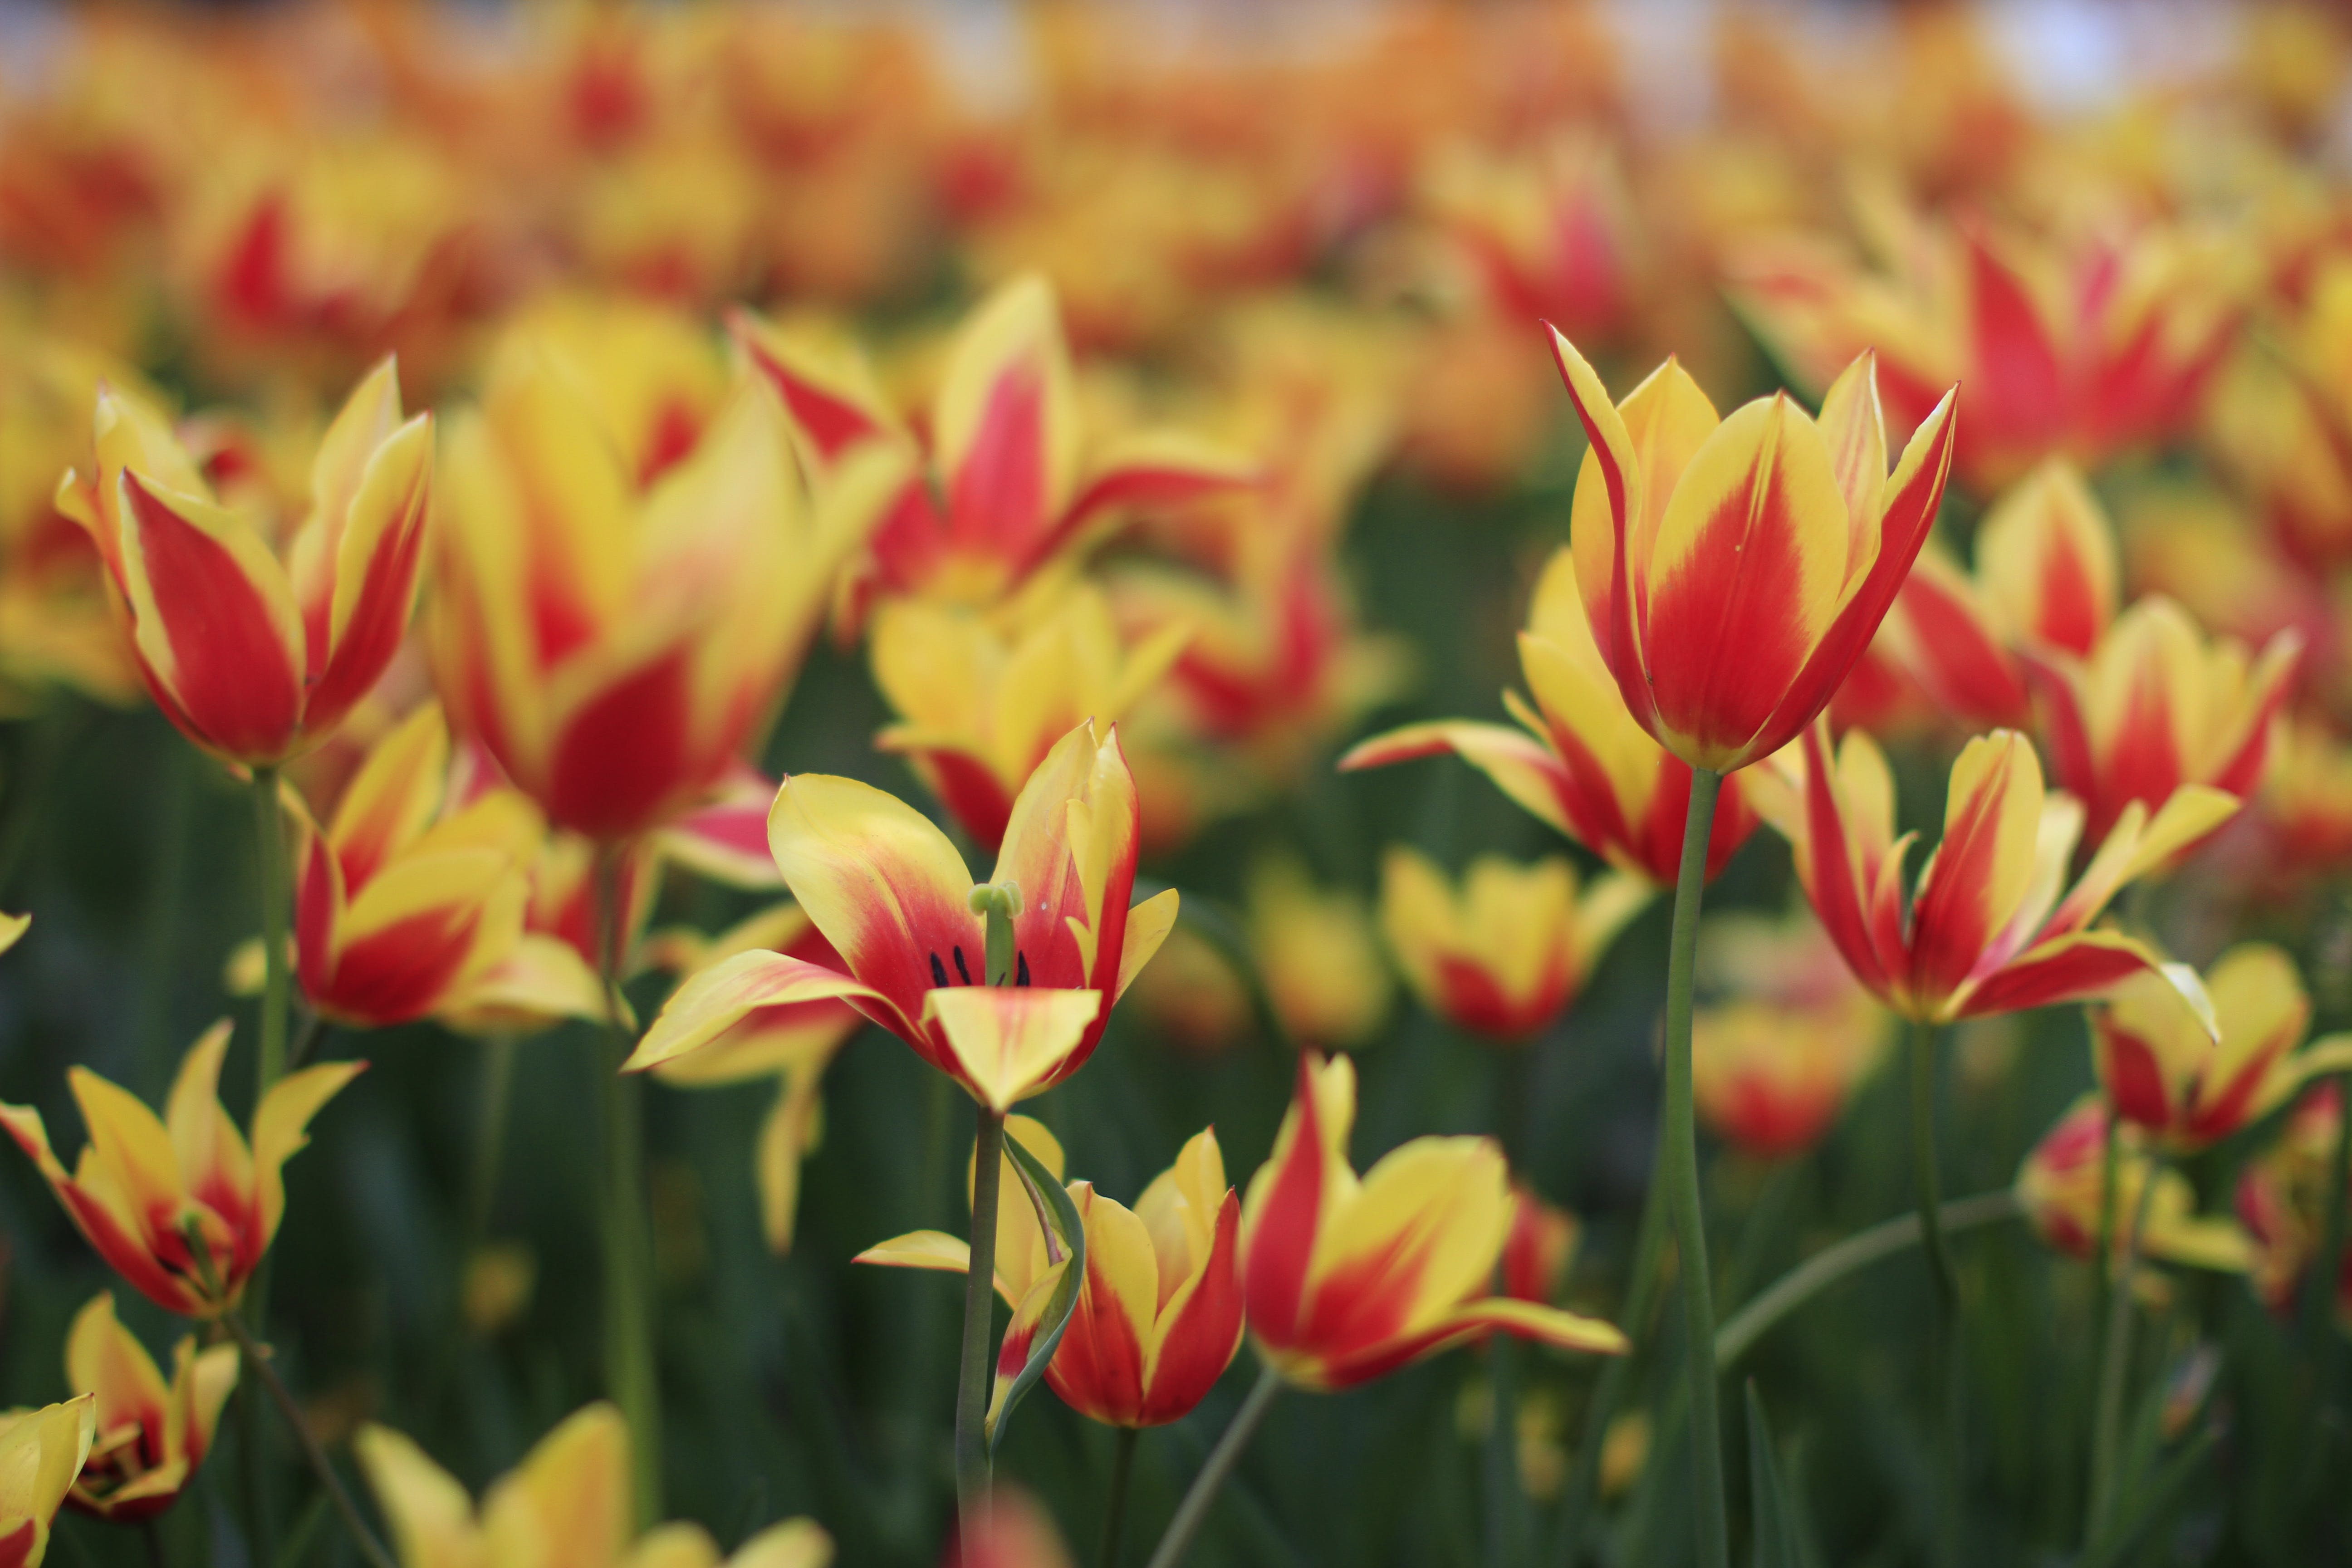 Shallow Focus Photography of Red and Yellow Flower Field